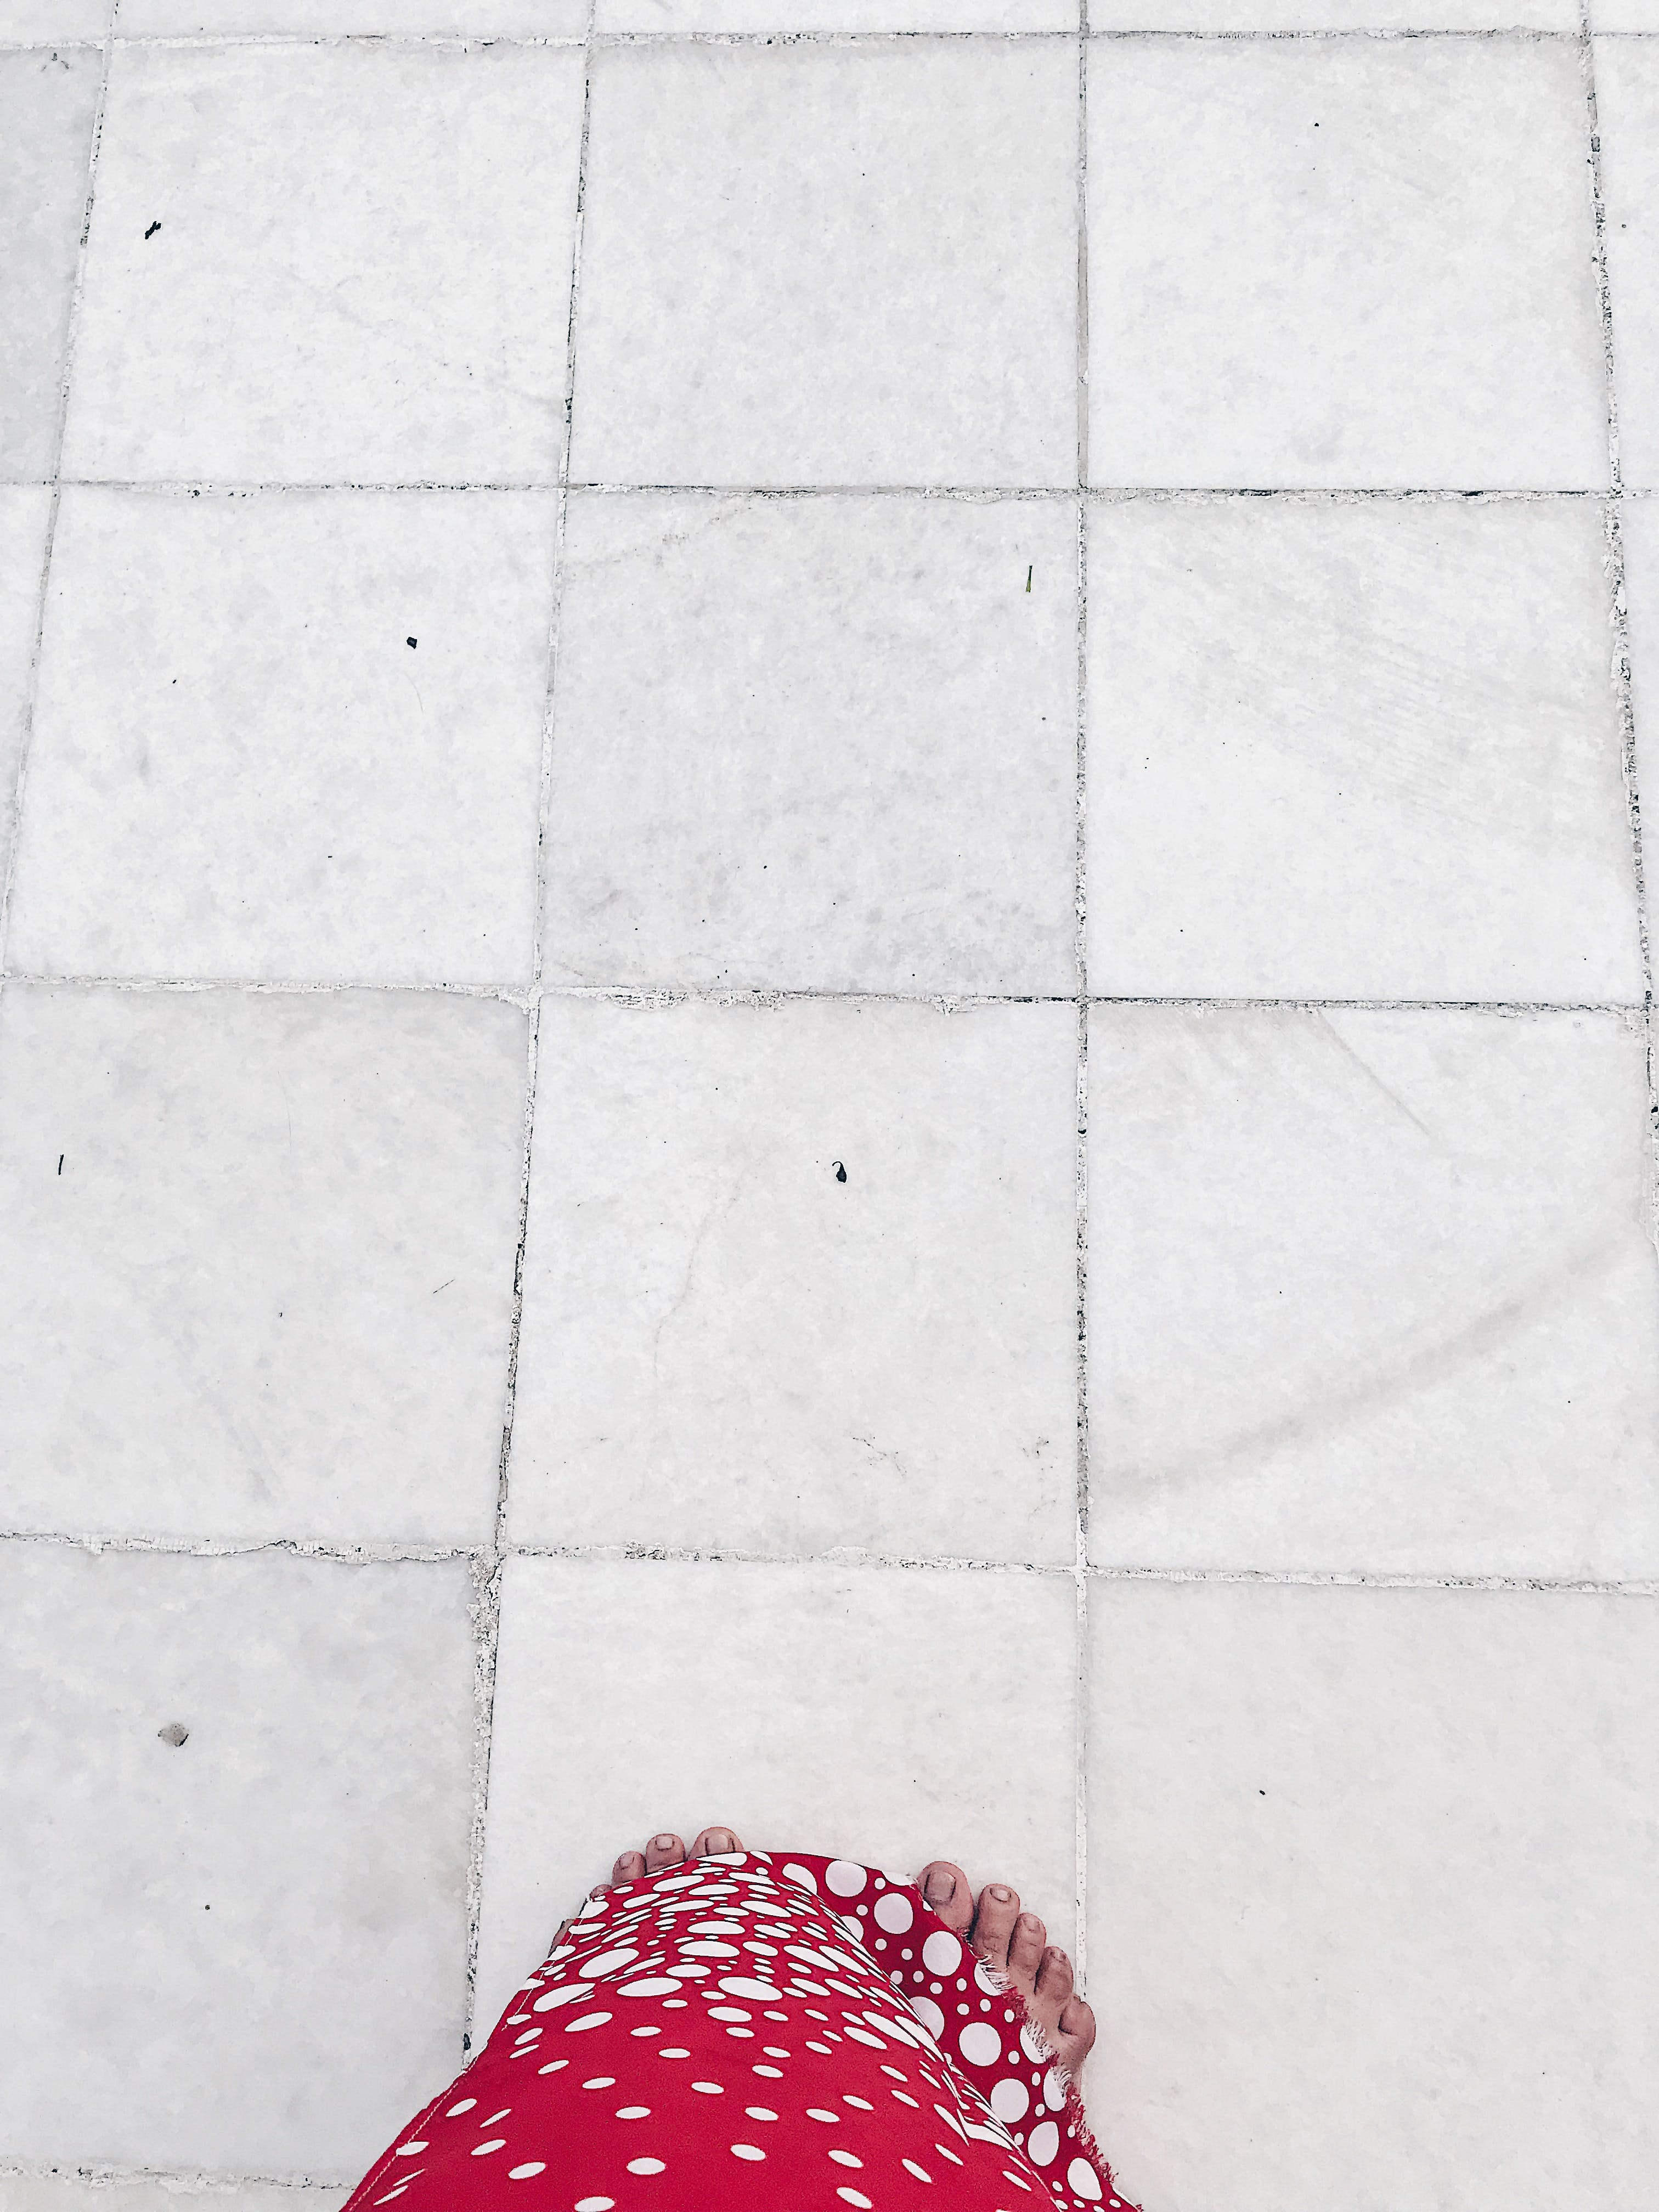 Person Stepping on White Floor Tile